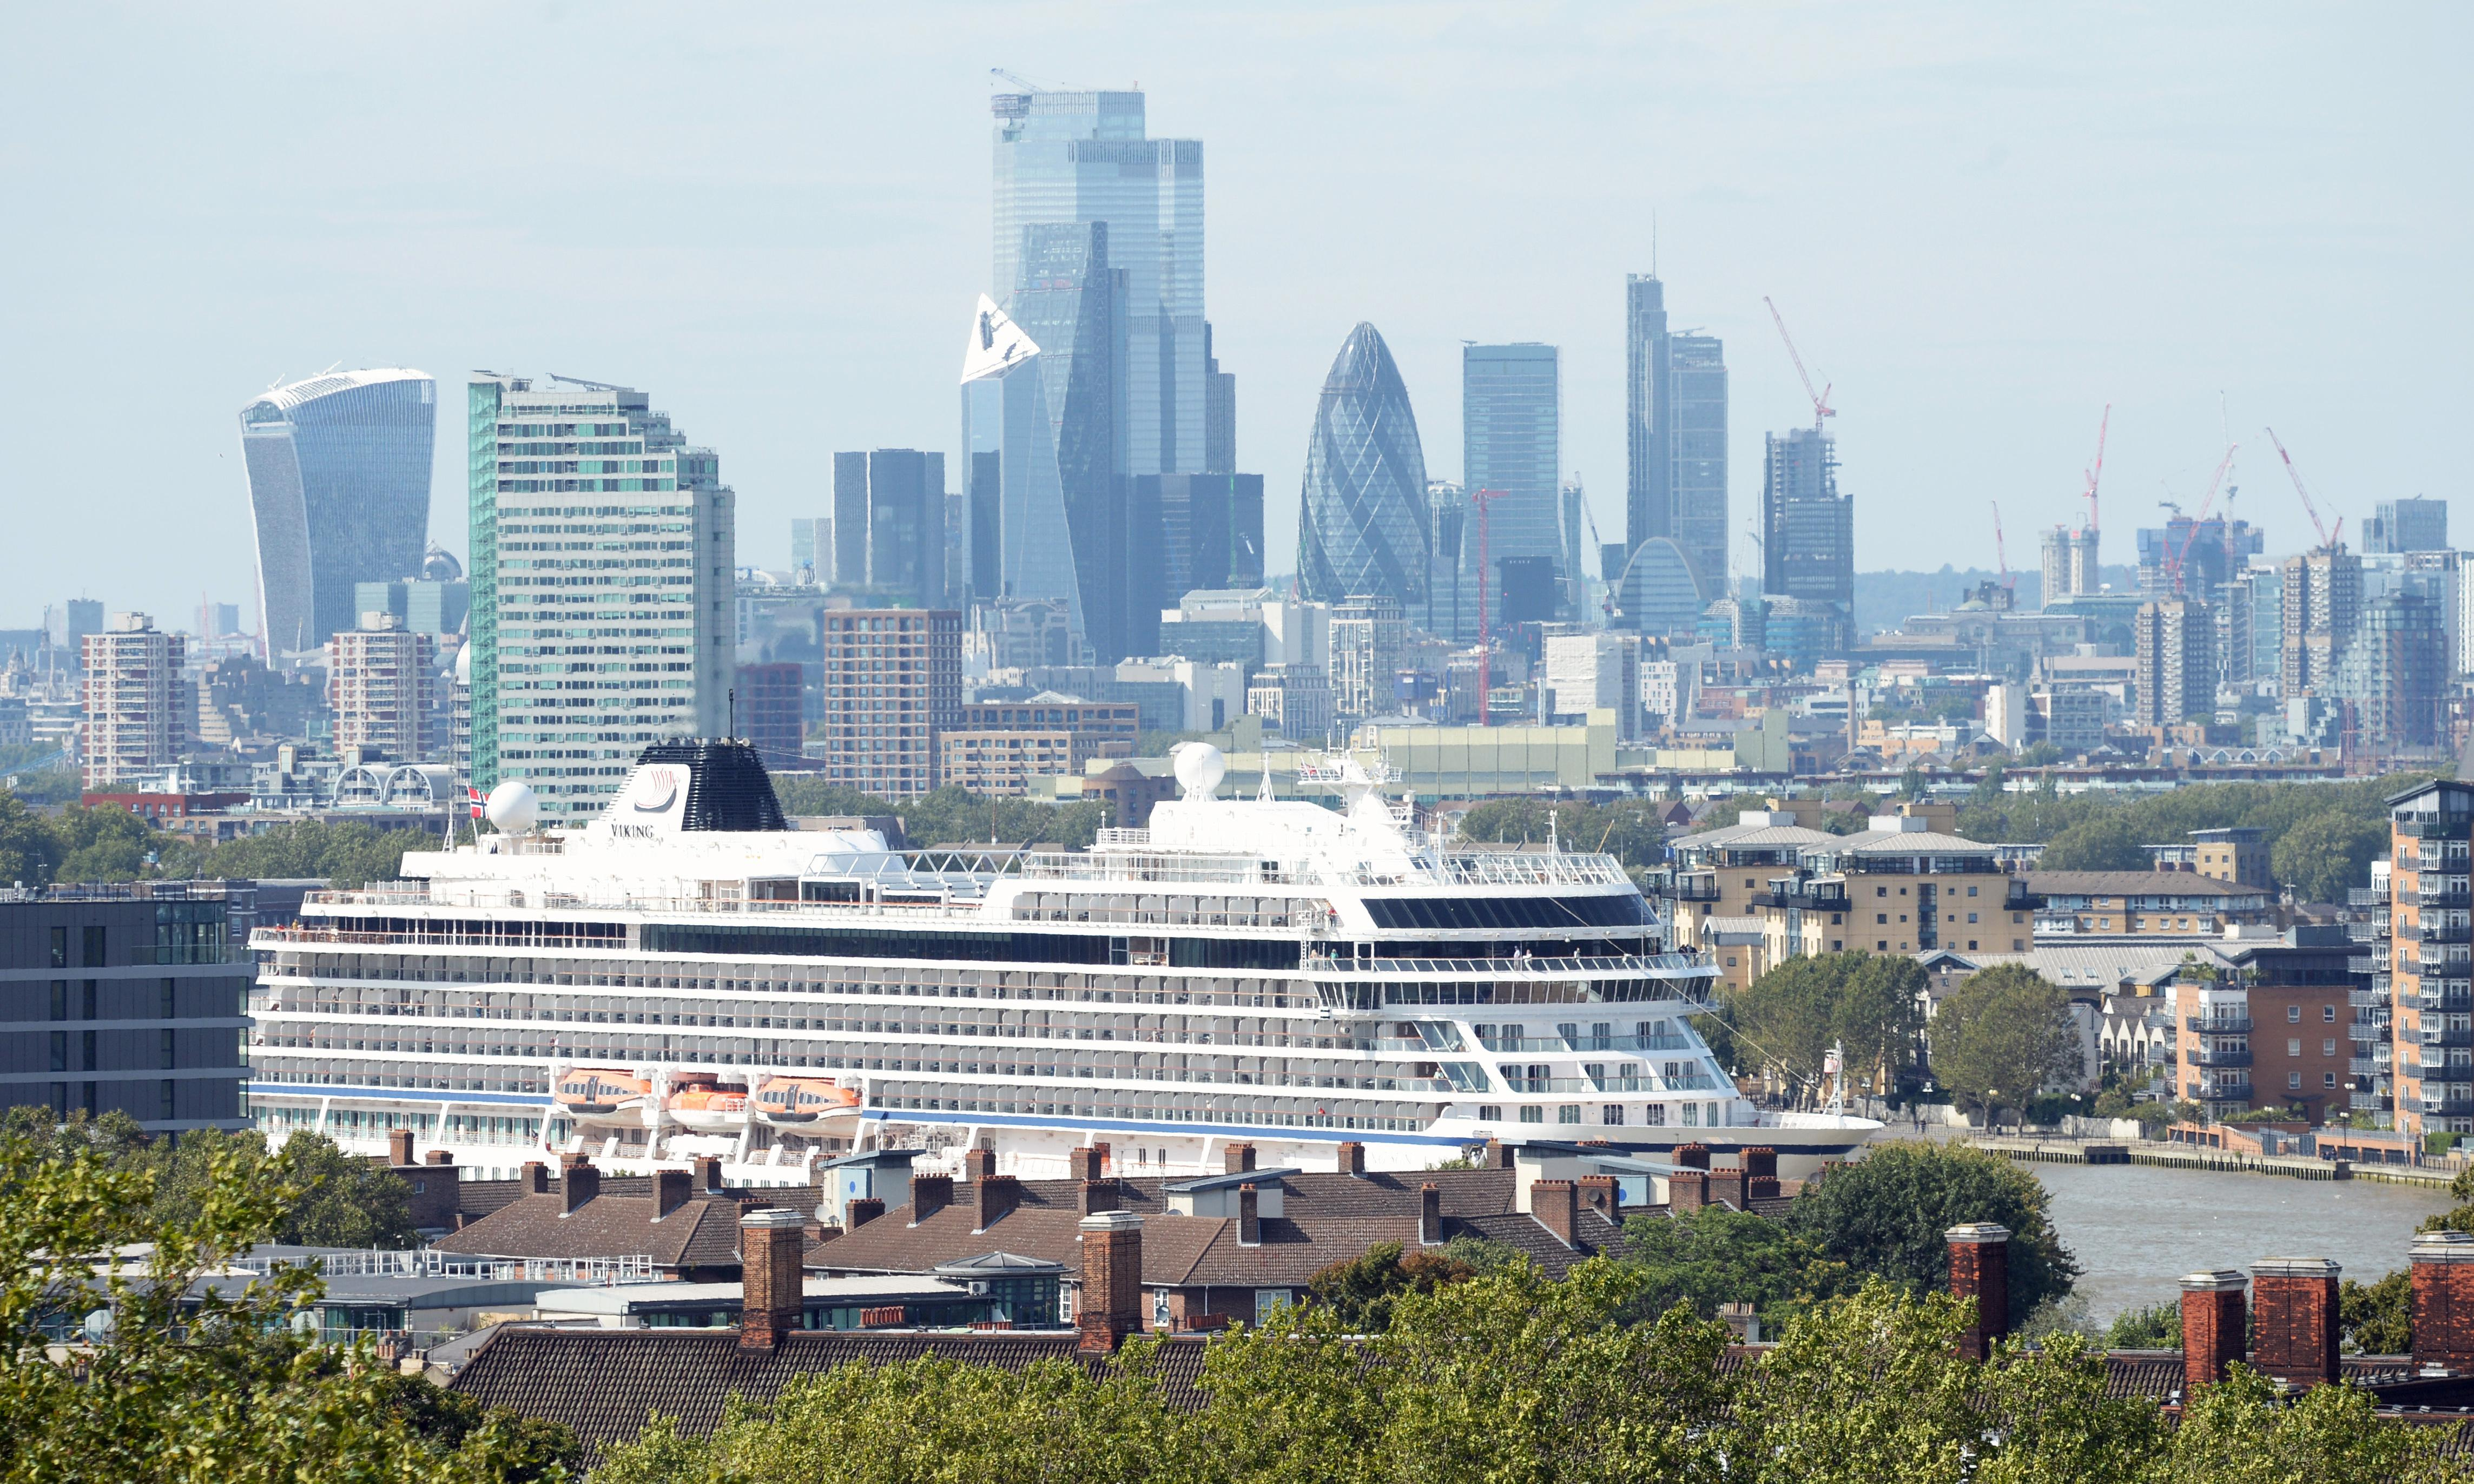 Outcry as Saga travel firm advertises cruise 'exclusively for Brits'